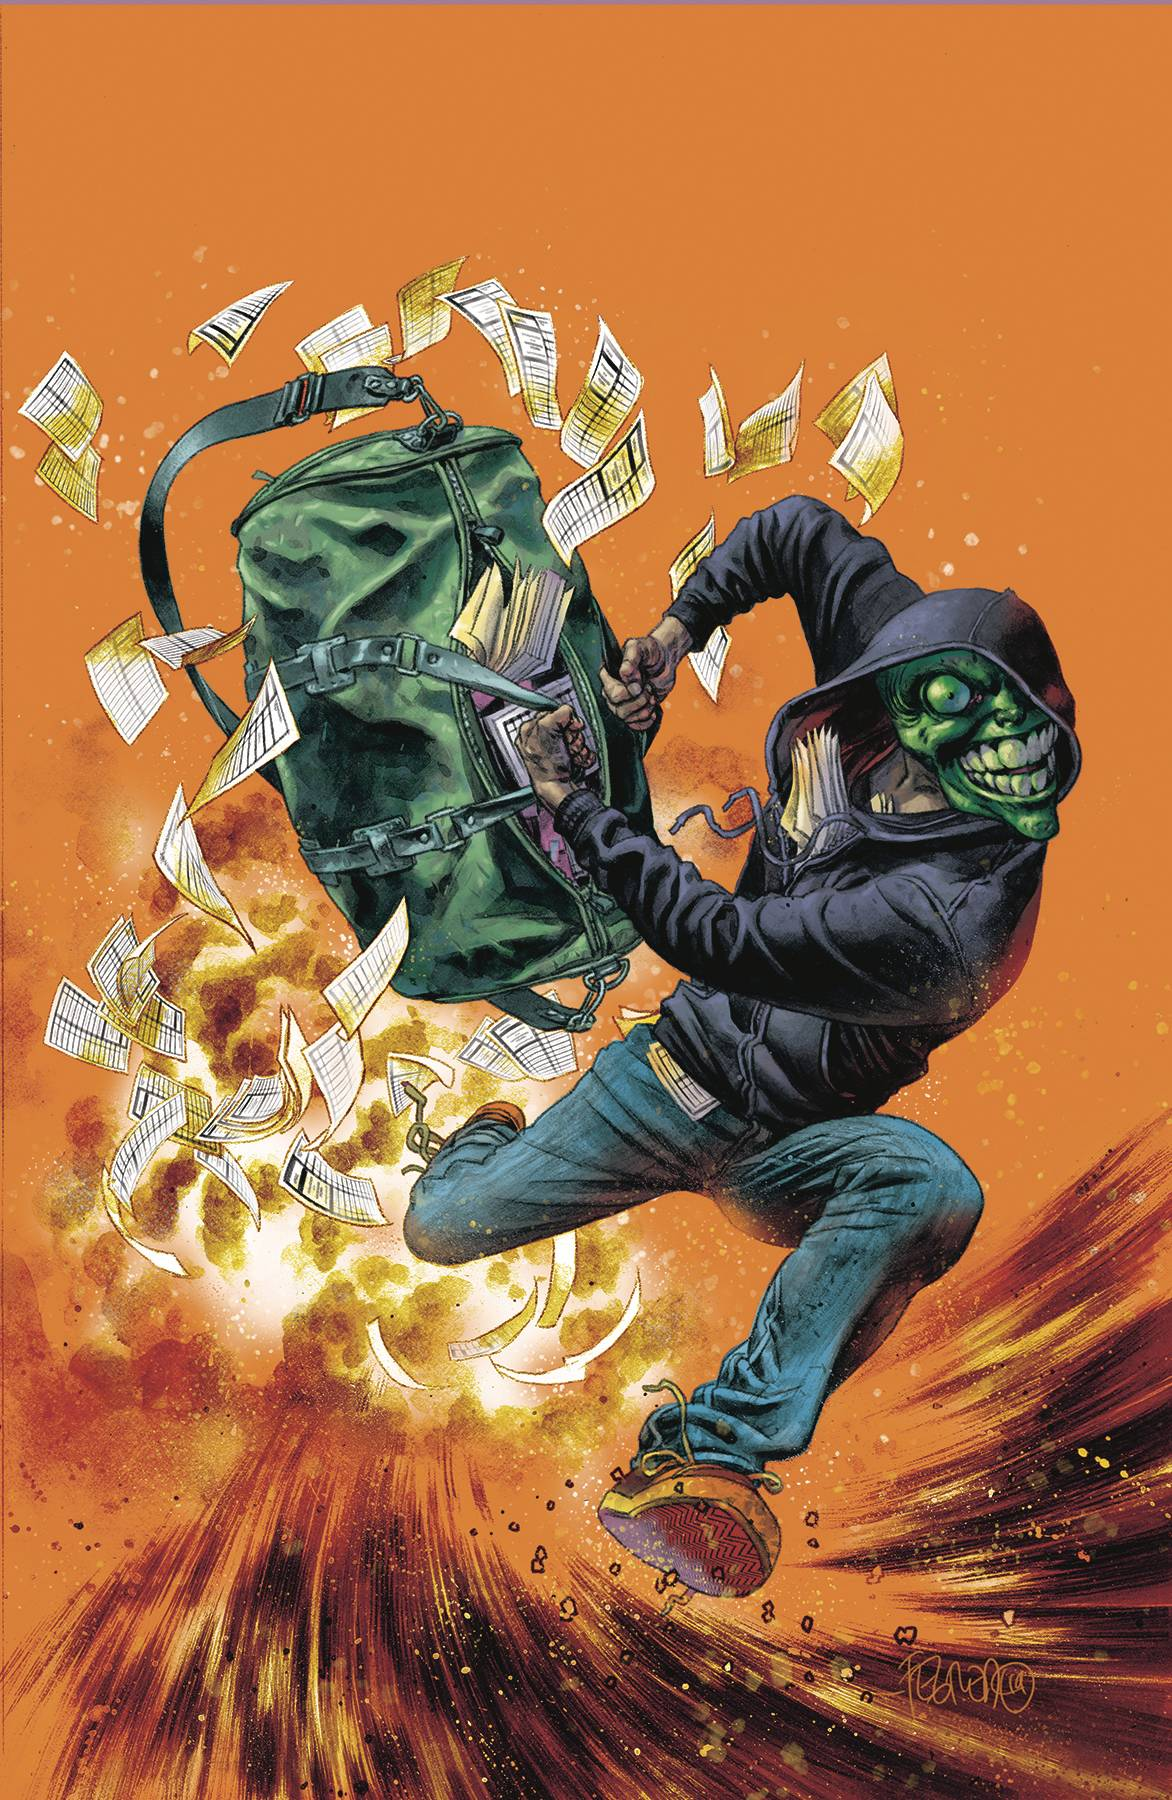 MASK I PLEDGE ALLEGIANCE TO THE MASK #4 (OF 4) CVR B FEGREDO